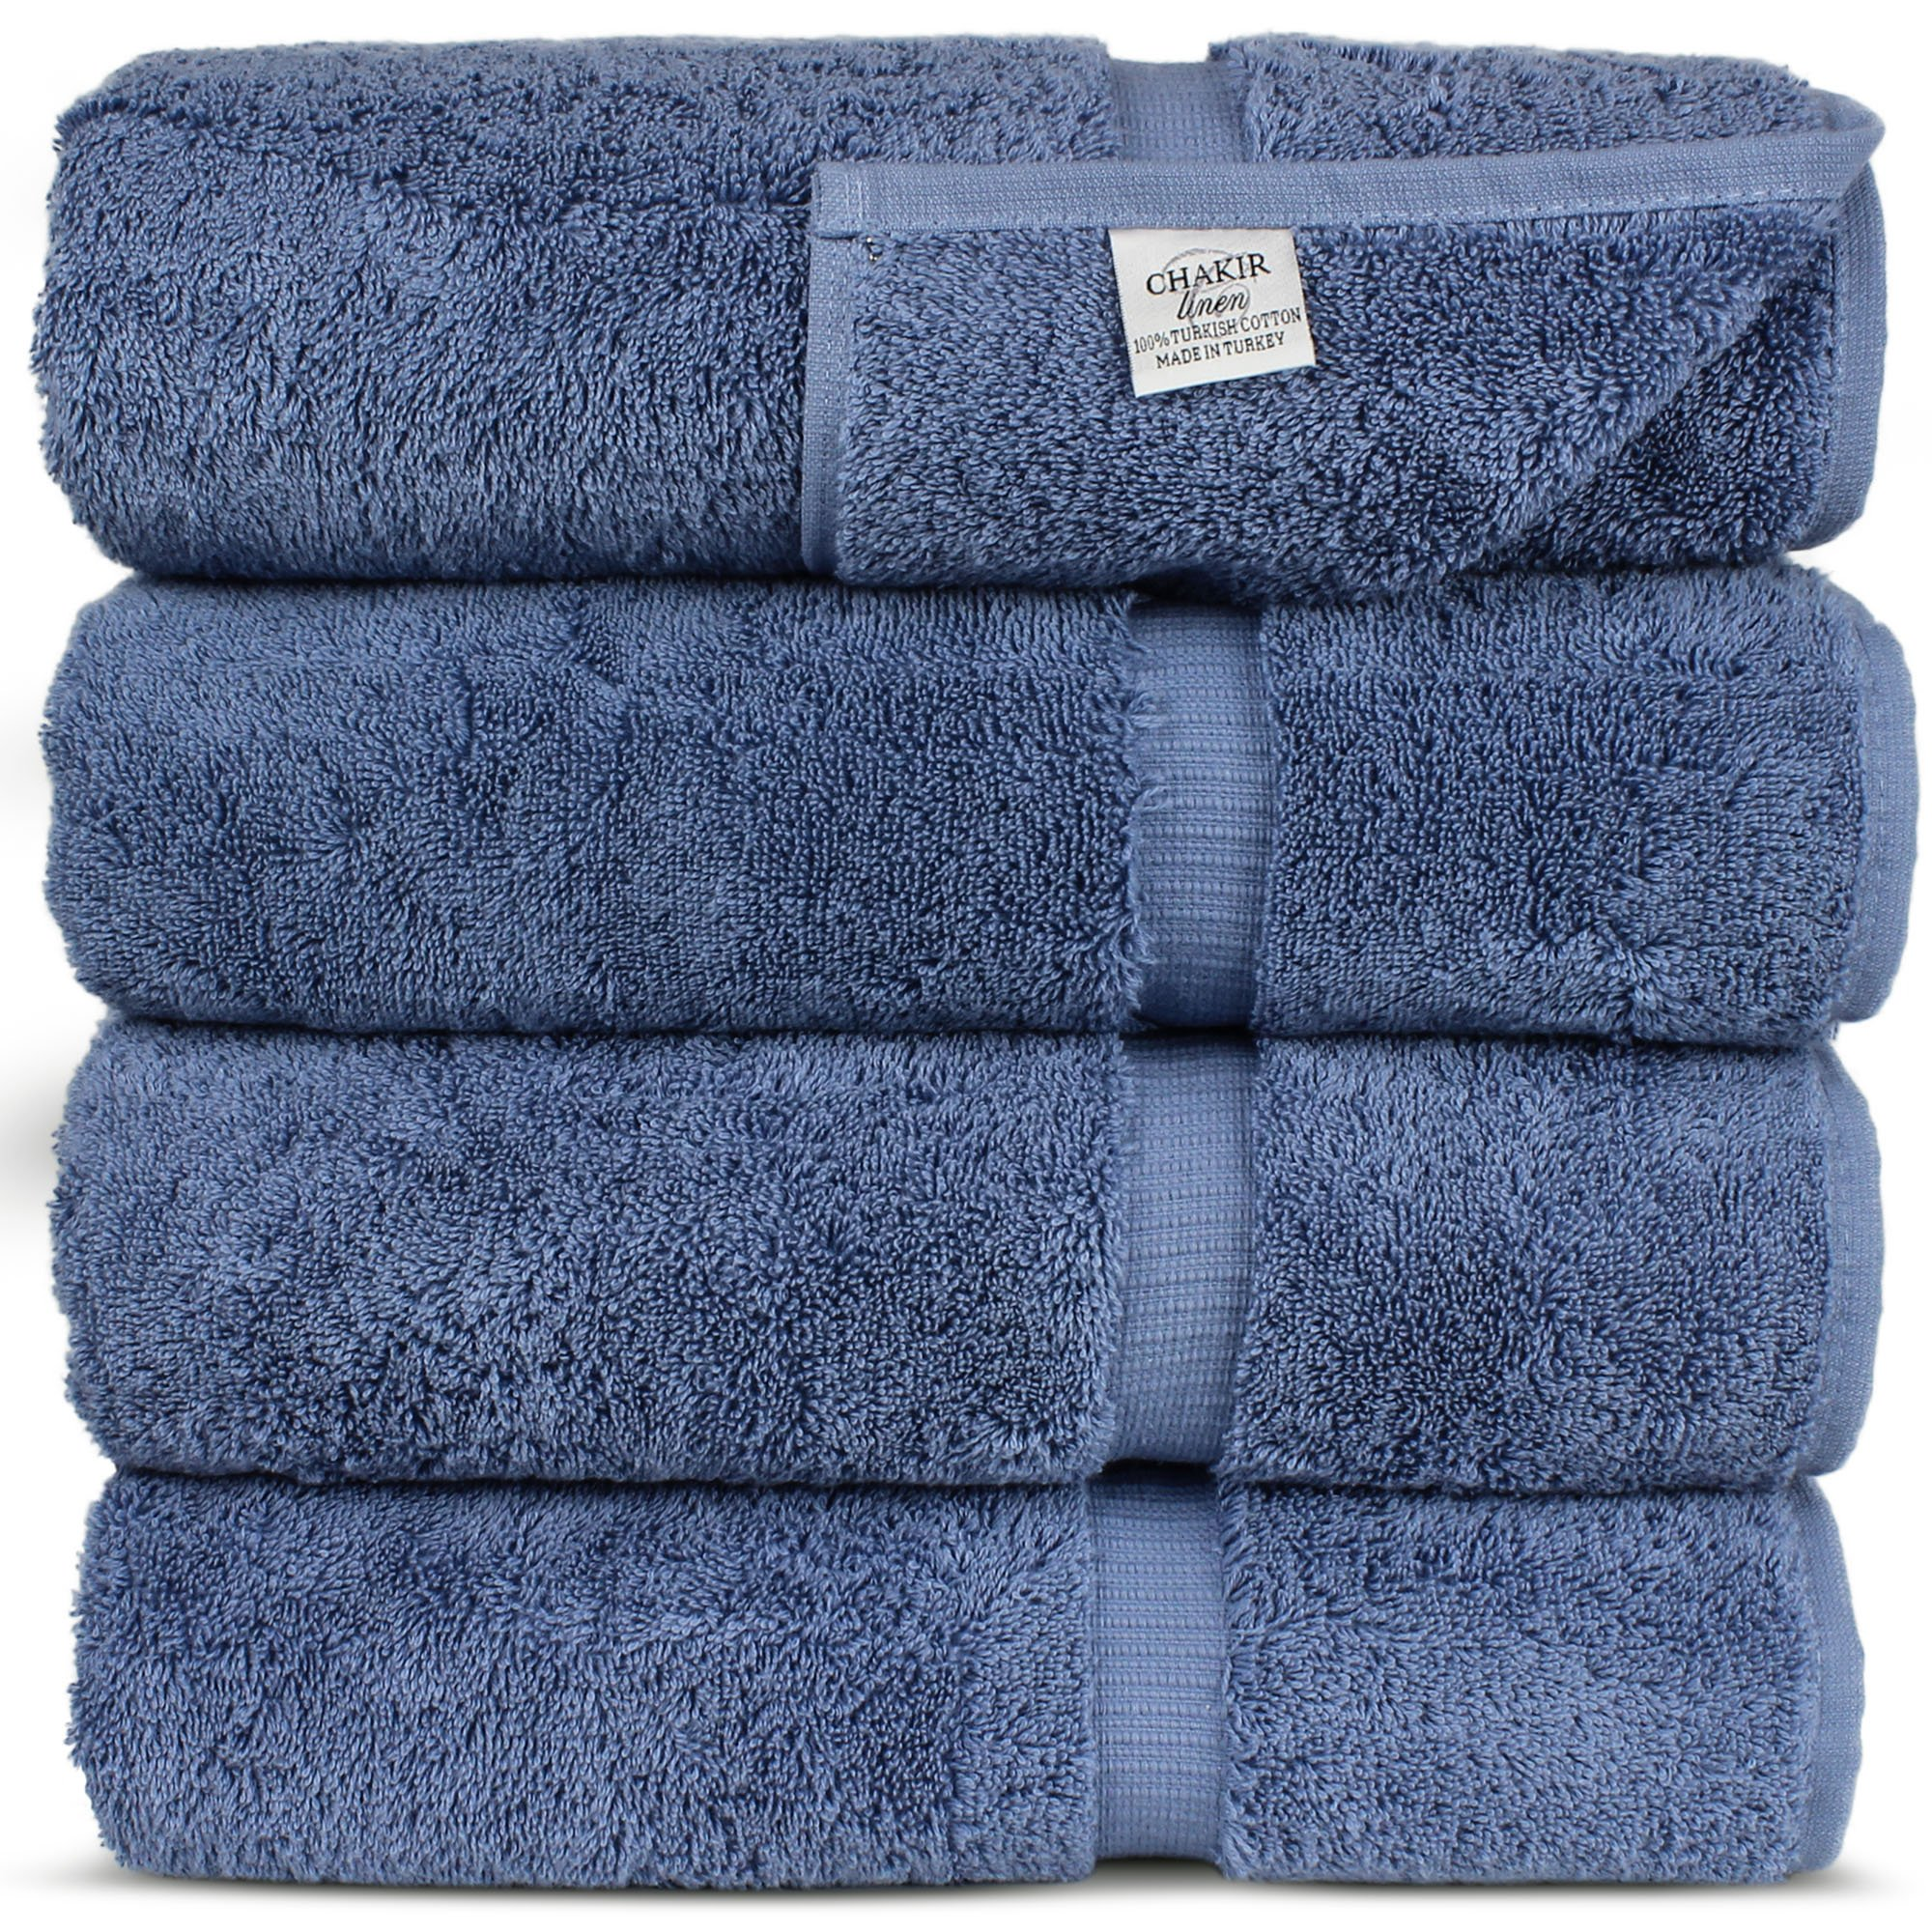 Luxury Hotel & Spa Towel Turkish Cotton (Bath Towel - Set of 4, Wedgewood) by Chakir Turkish Linens